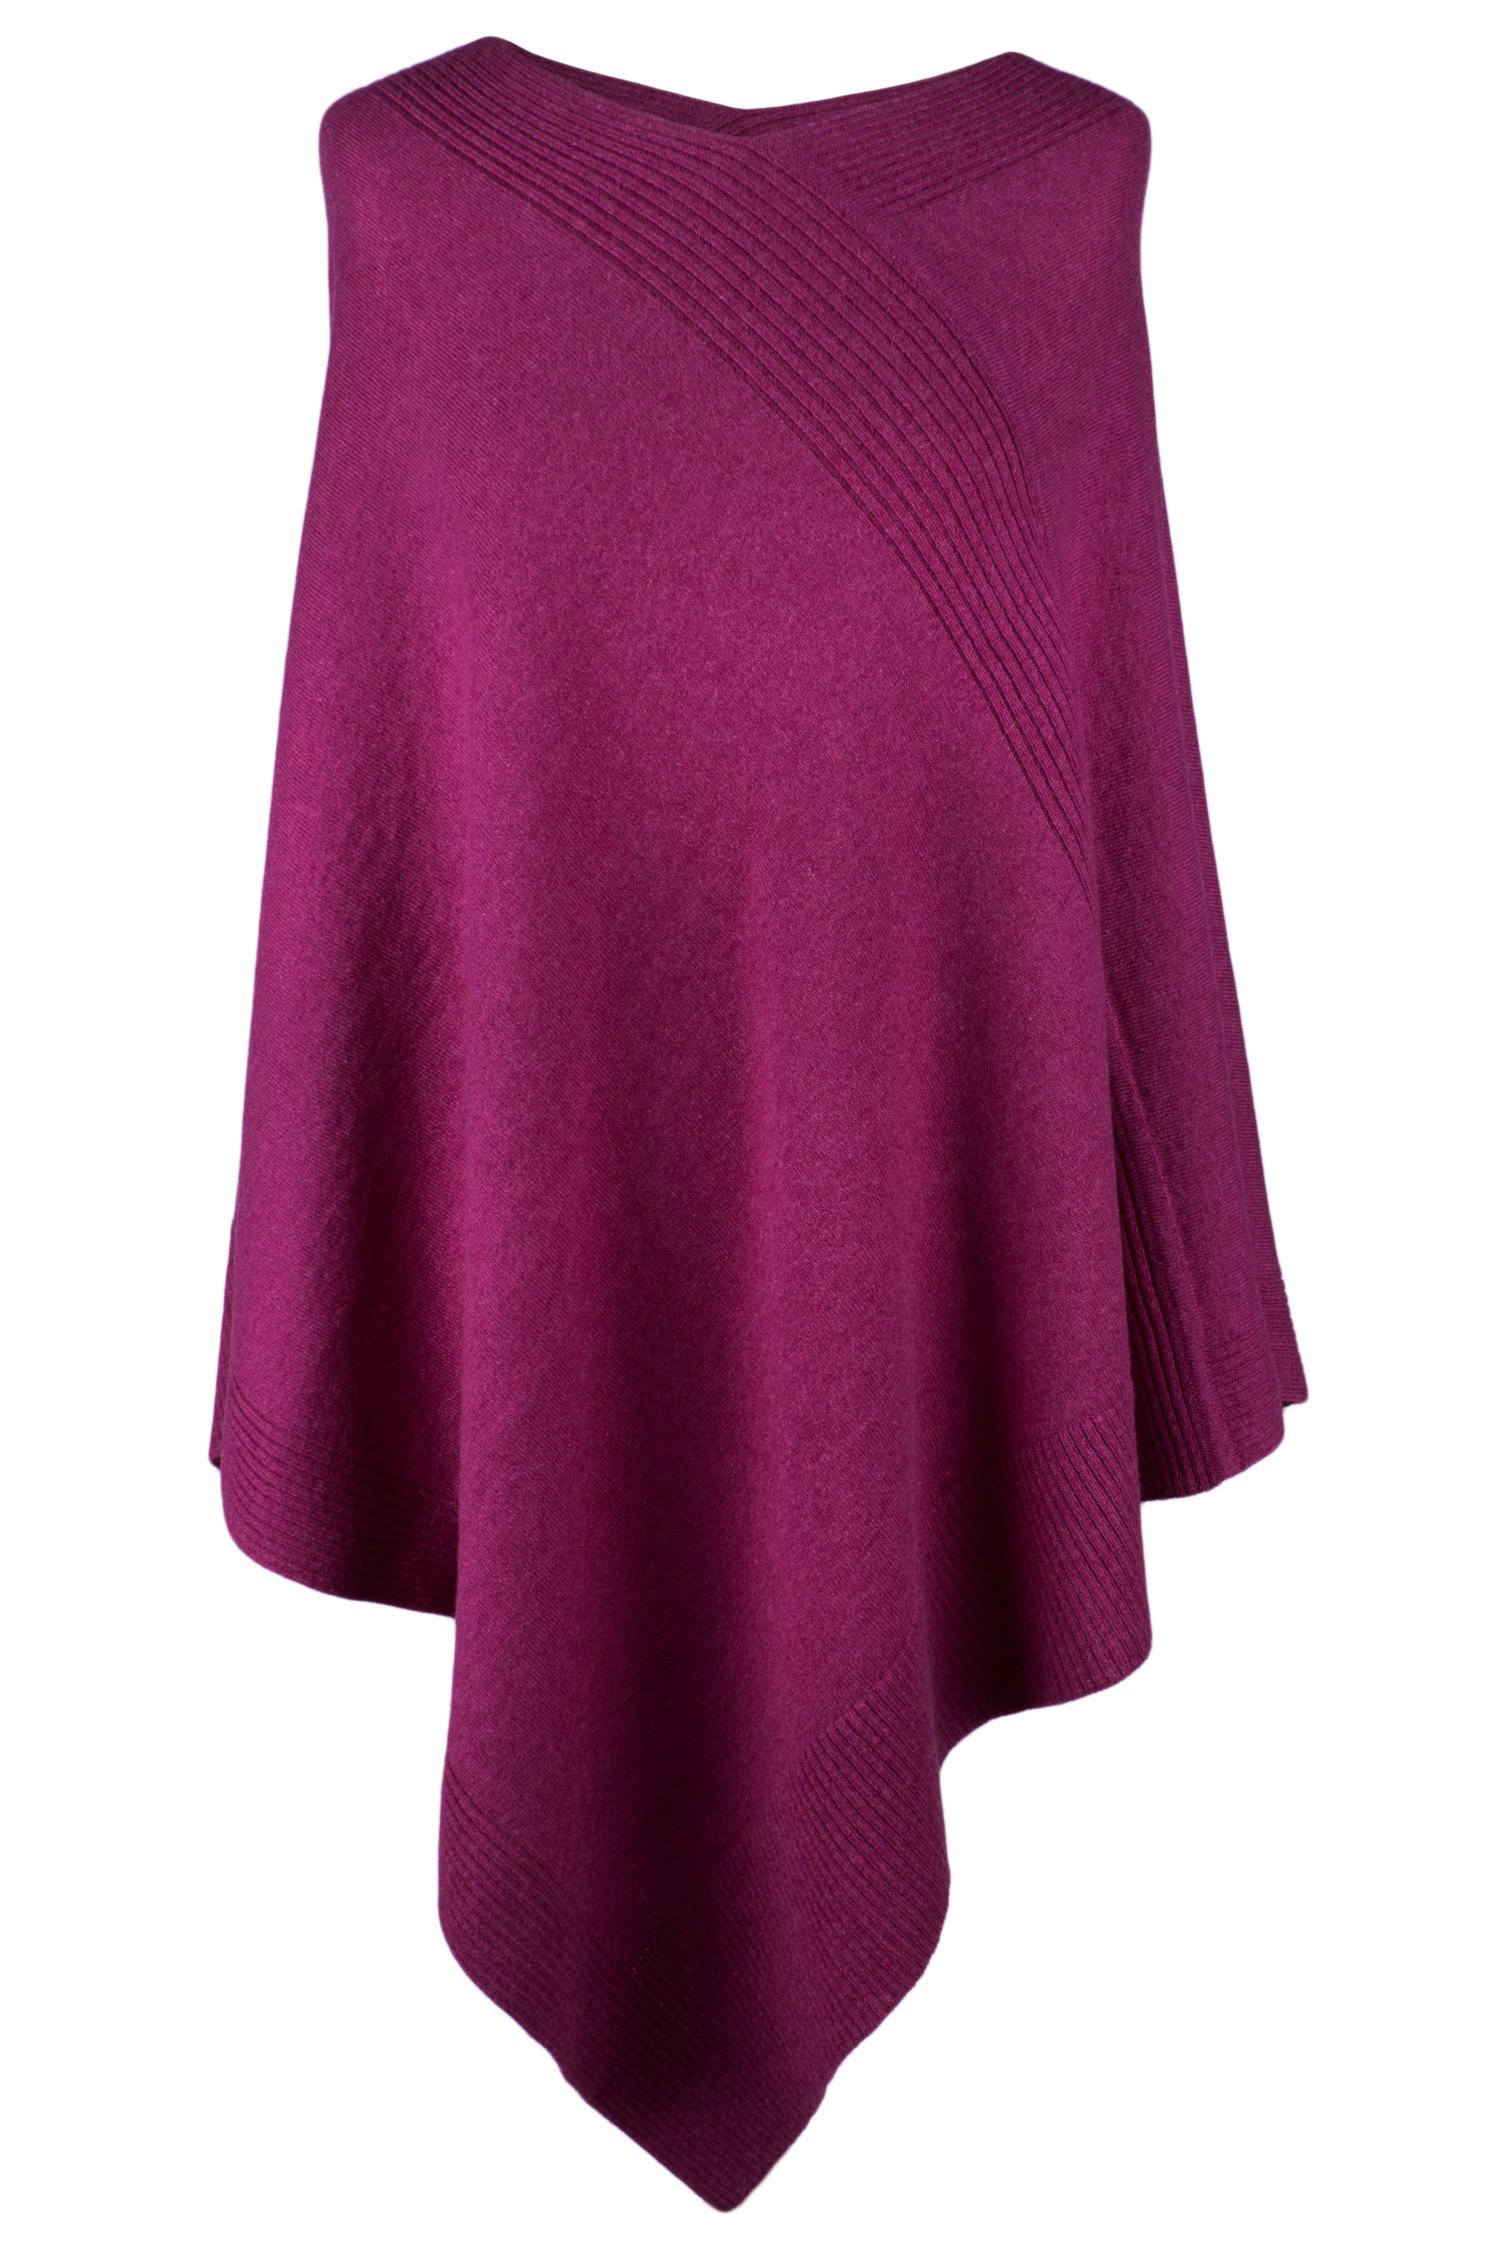 Love Cashmere Women's 100% Cashmere Poncho - Fuchsia Pink - Made In Scotland by RRP $600